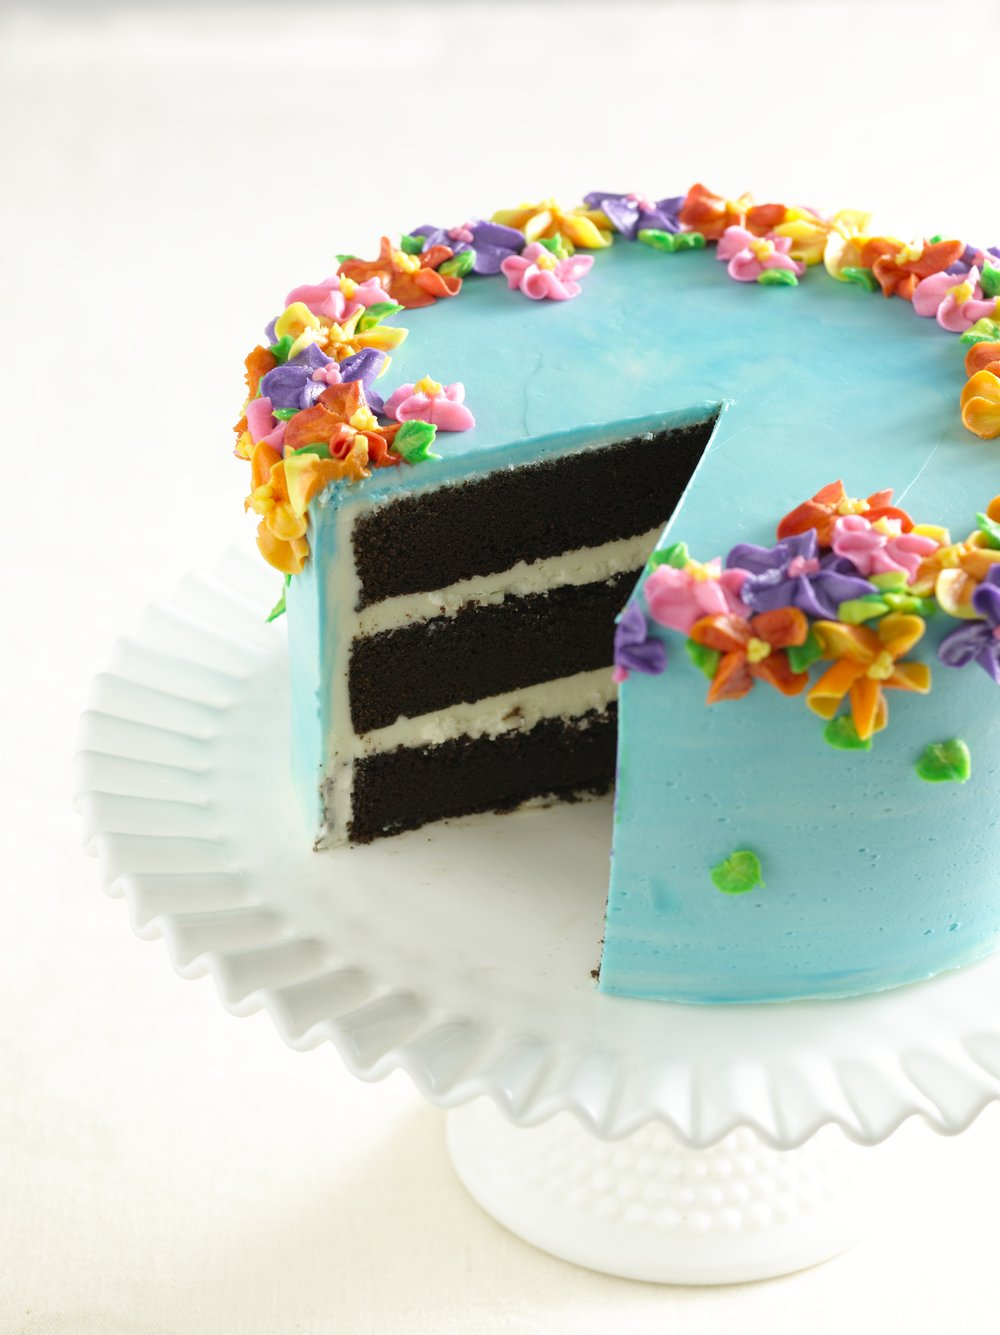 Turquoise frosted chocolate cake with vibrant flowers around the top